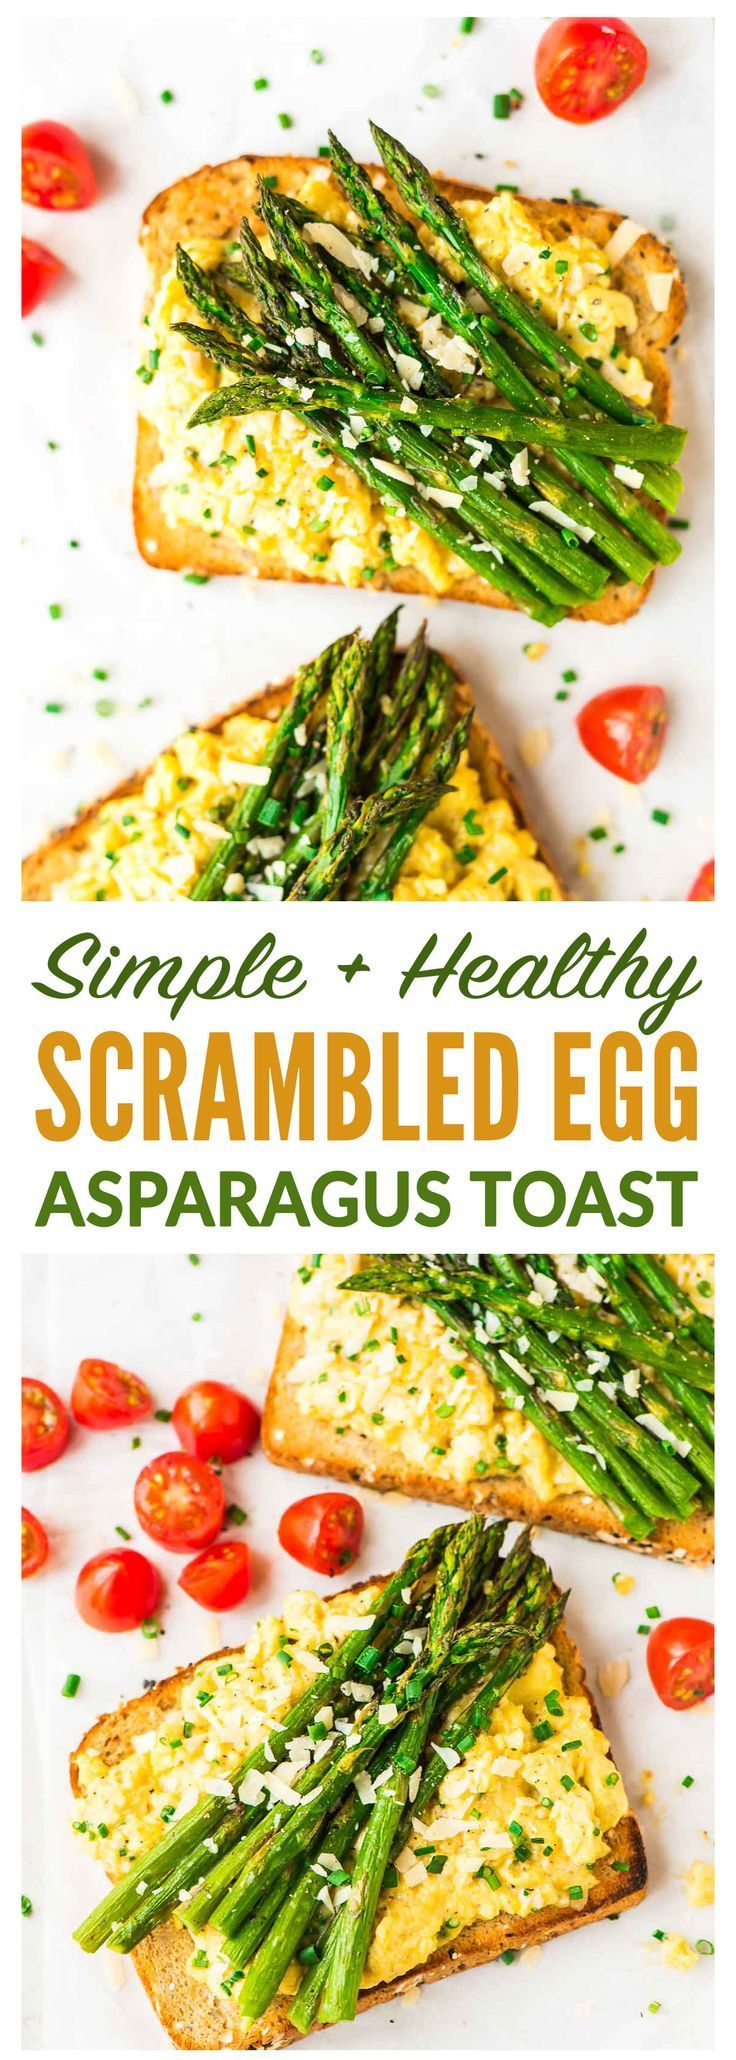 Easy Asparagus and Creamy Scrambled Egg Toasts – Fast, healthy, and high protein. Great for a filling vegetarian breakfast or dinner!  Recipe at wellplated.com | @wellplated